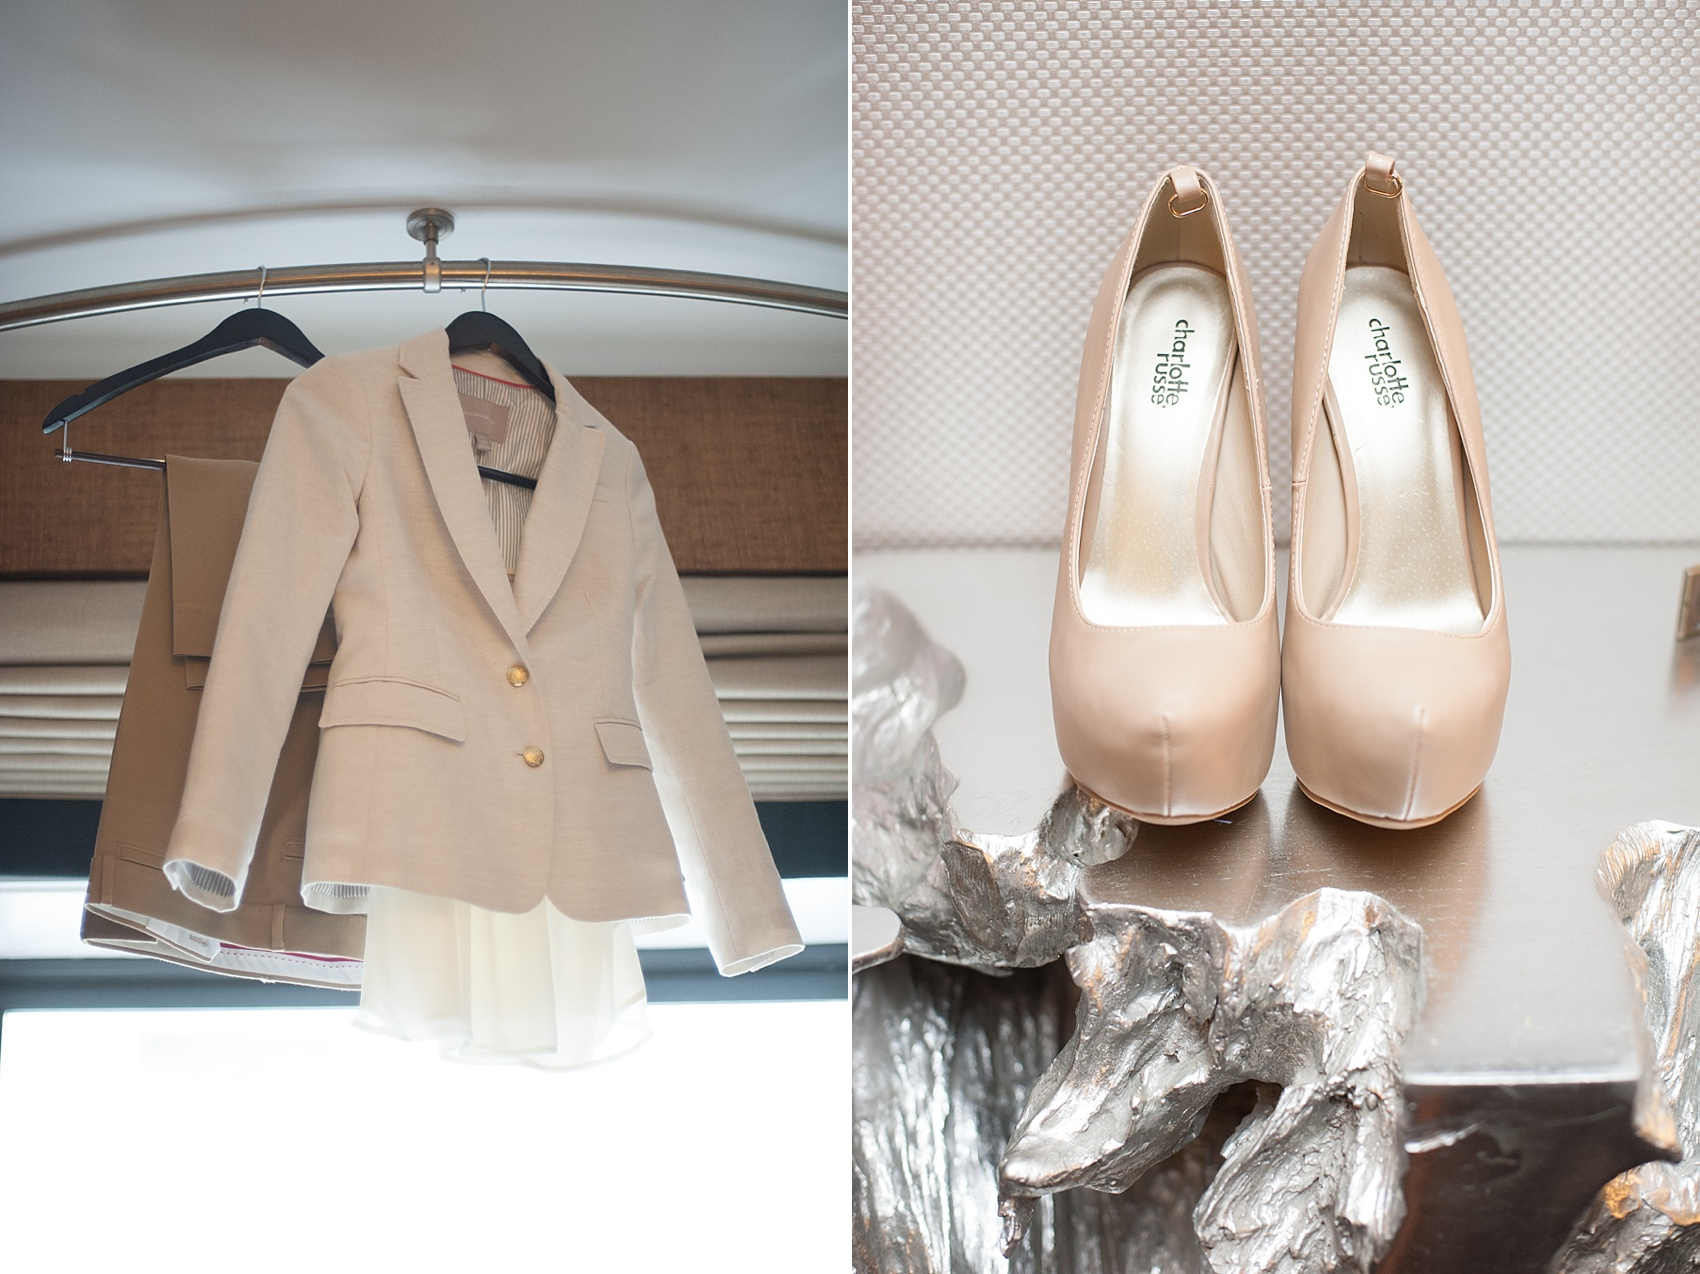 The bride's blazer and suit for her same sex wedding. Elopement in Central Park with photos by Mikkel Paige Photography. #nycwedidng #samesexmarriage #equality #nudeheels #weddingoutfit #nycweddingphotographer